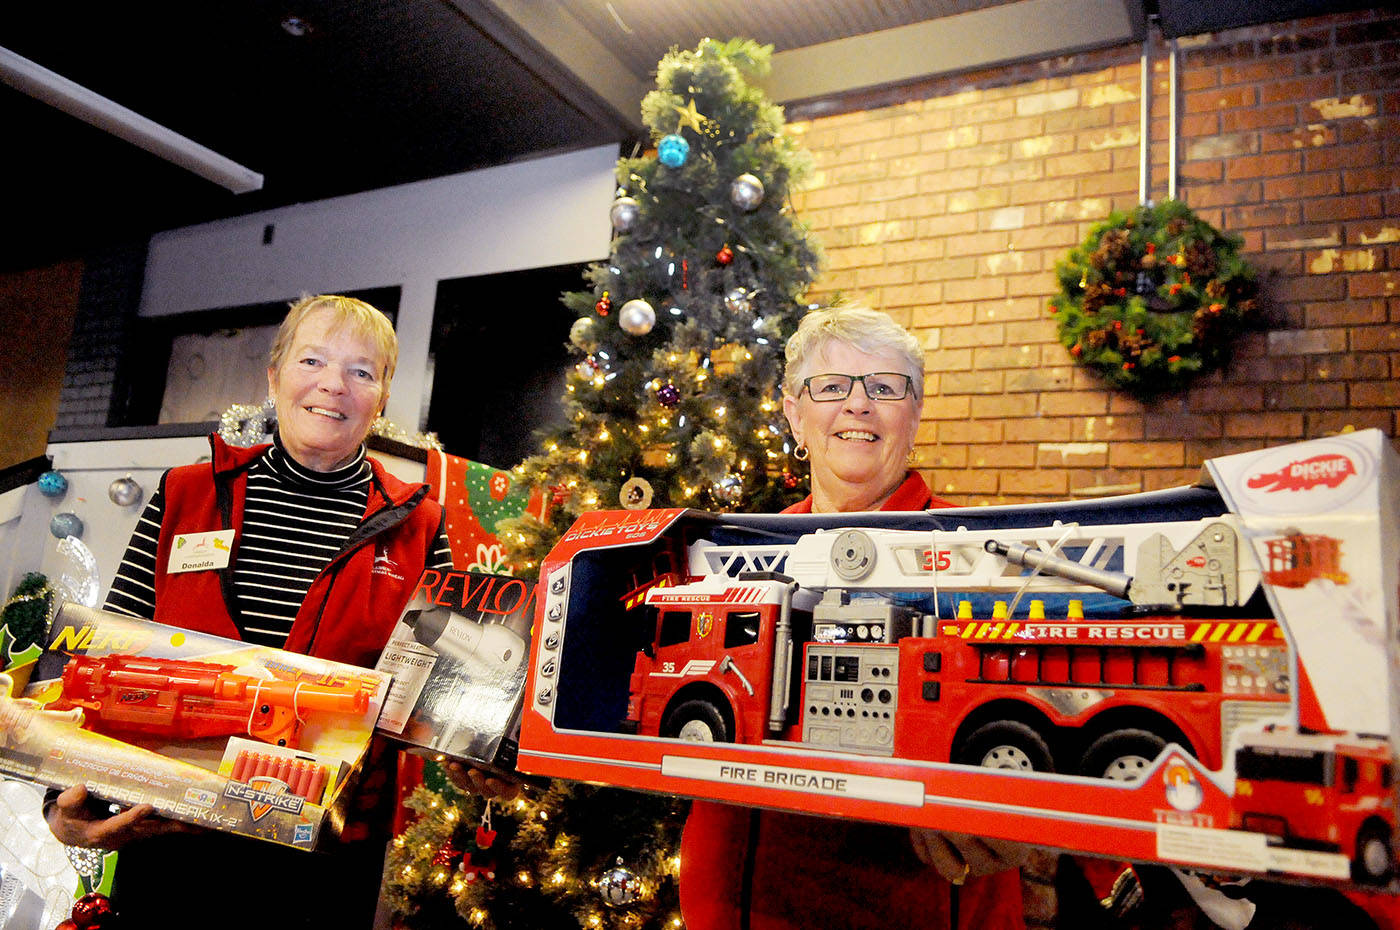 Bureau makes Christmas happen for families in need